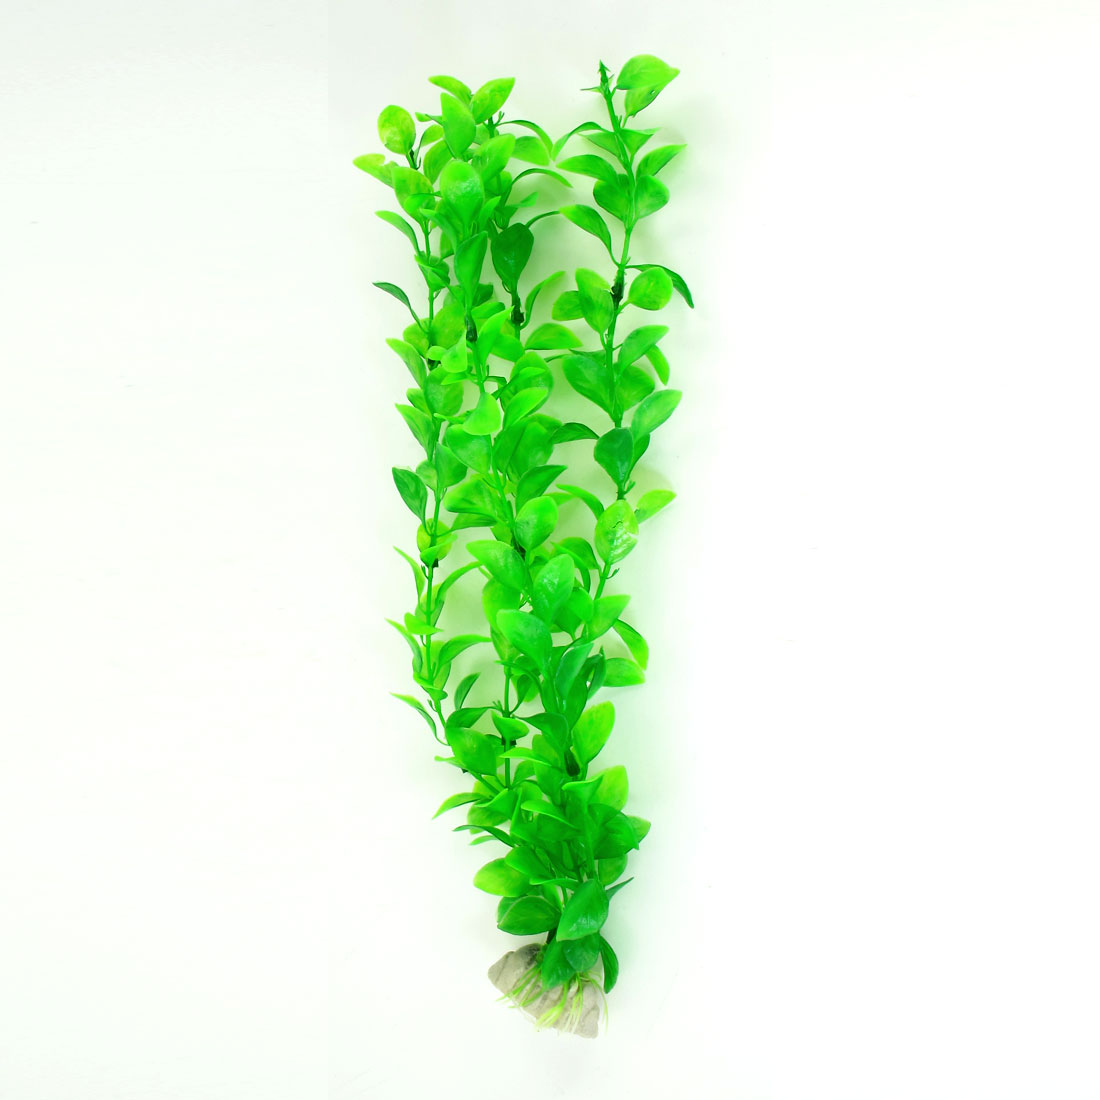 "13"" High Ceramic Base Manmade Plastic Green Underwater Plant Grass for Fish Tank"